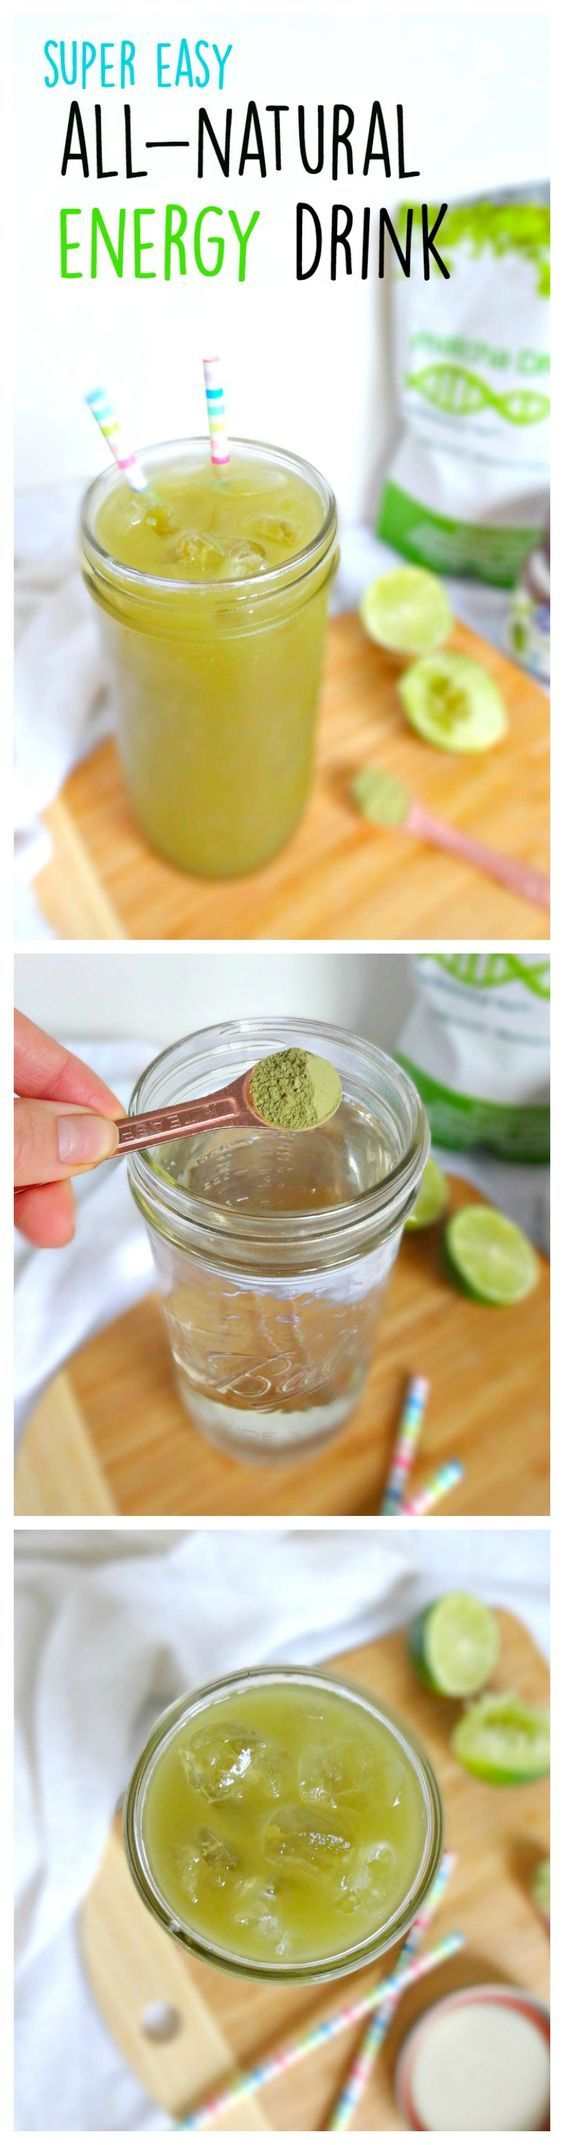 Super Easy All-Natural Energy Drink - homemade, vegan, pure and healthy energy that's ready in 30 seconds. The healthy replacement for coffee and sugary drinks for: focus, concentration and energy! Made with superfood matcha powder. From The Glowing Fridge.